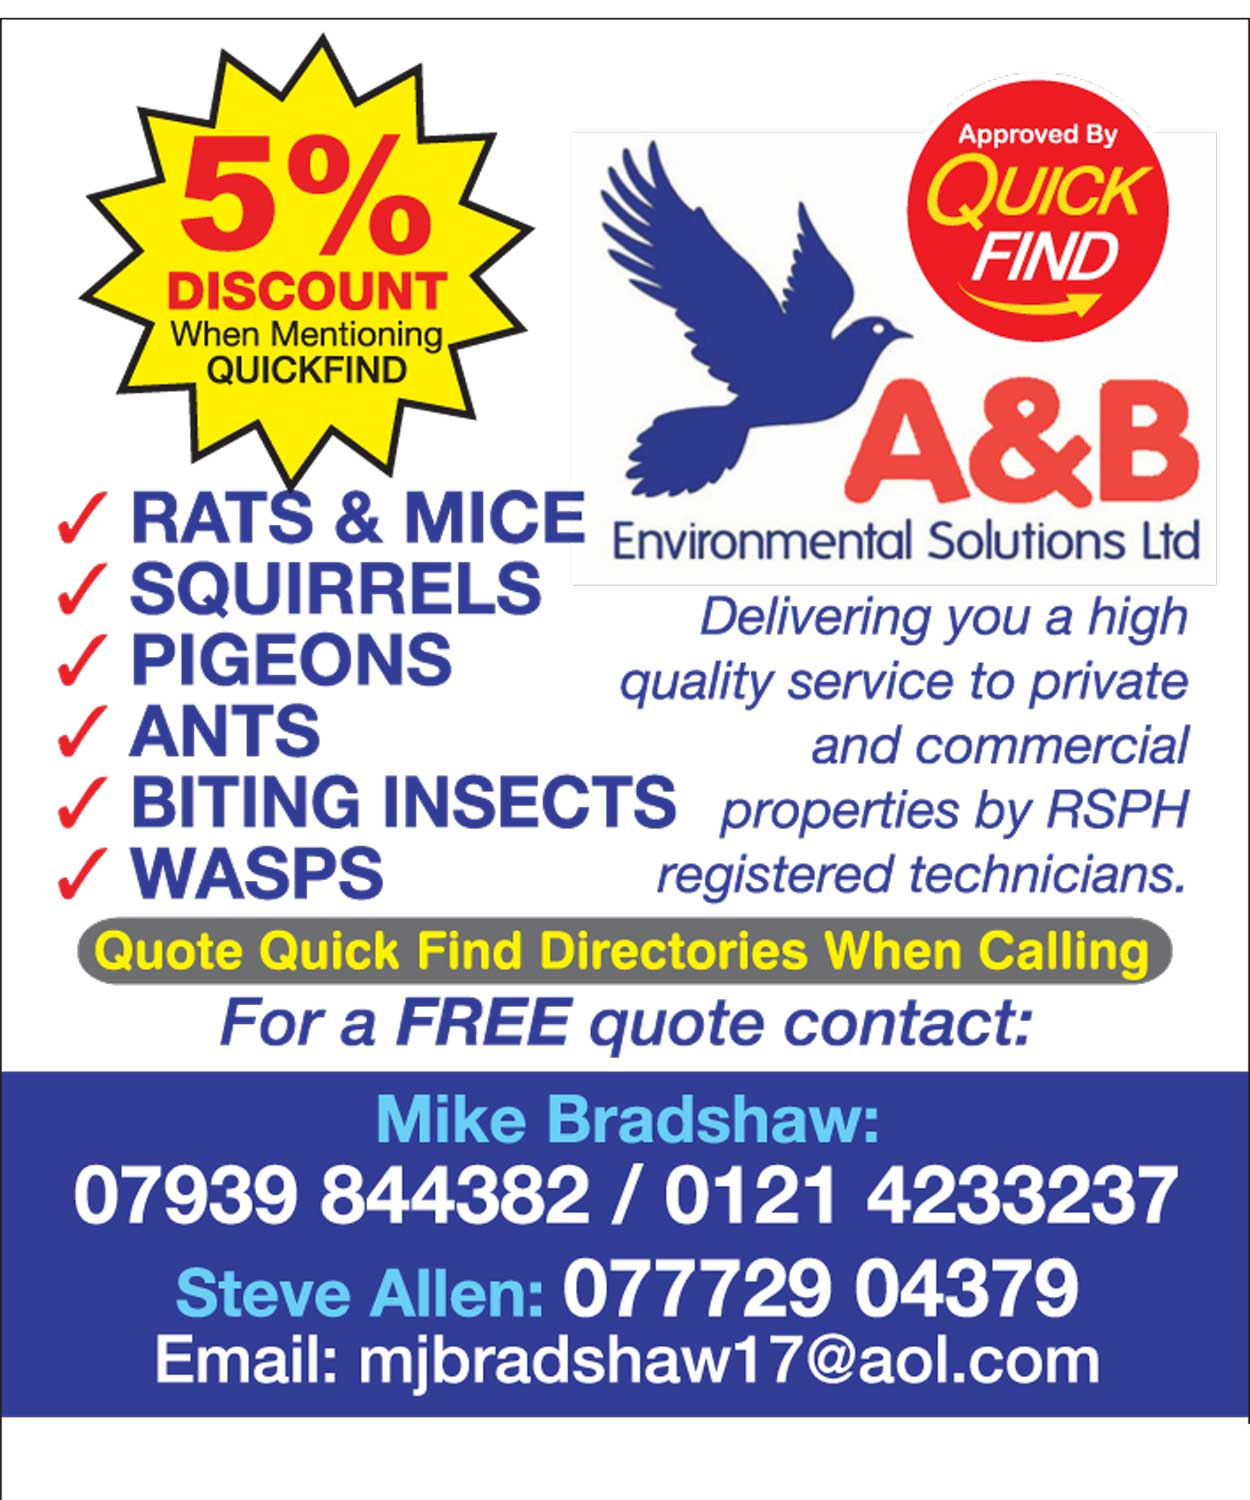 A&B Environmental Solutions Ltd